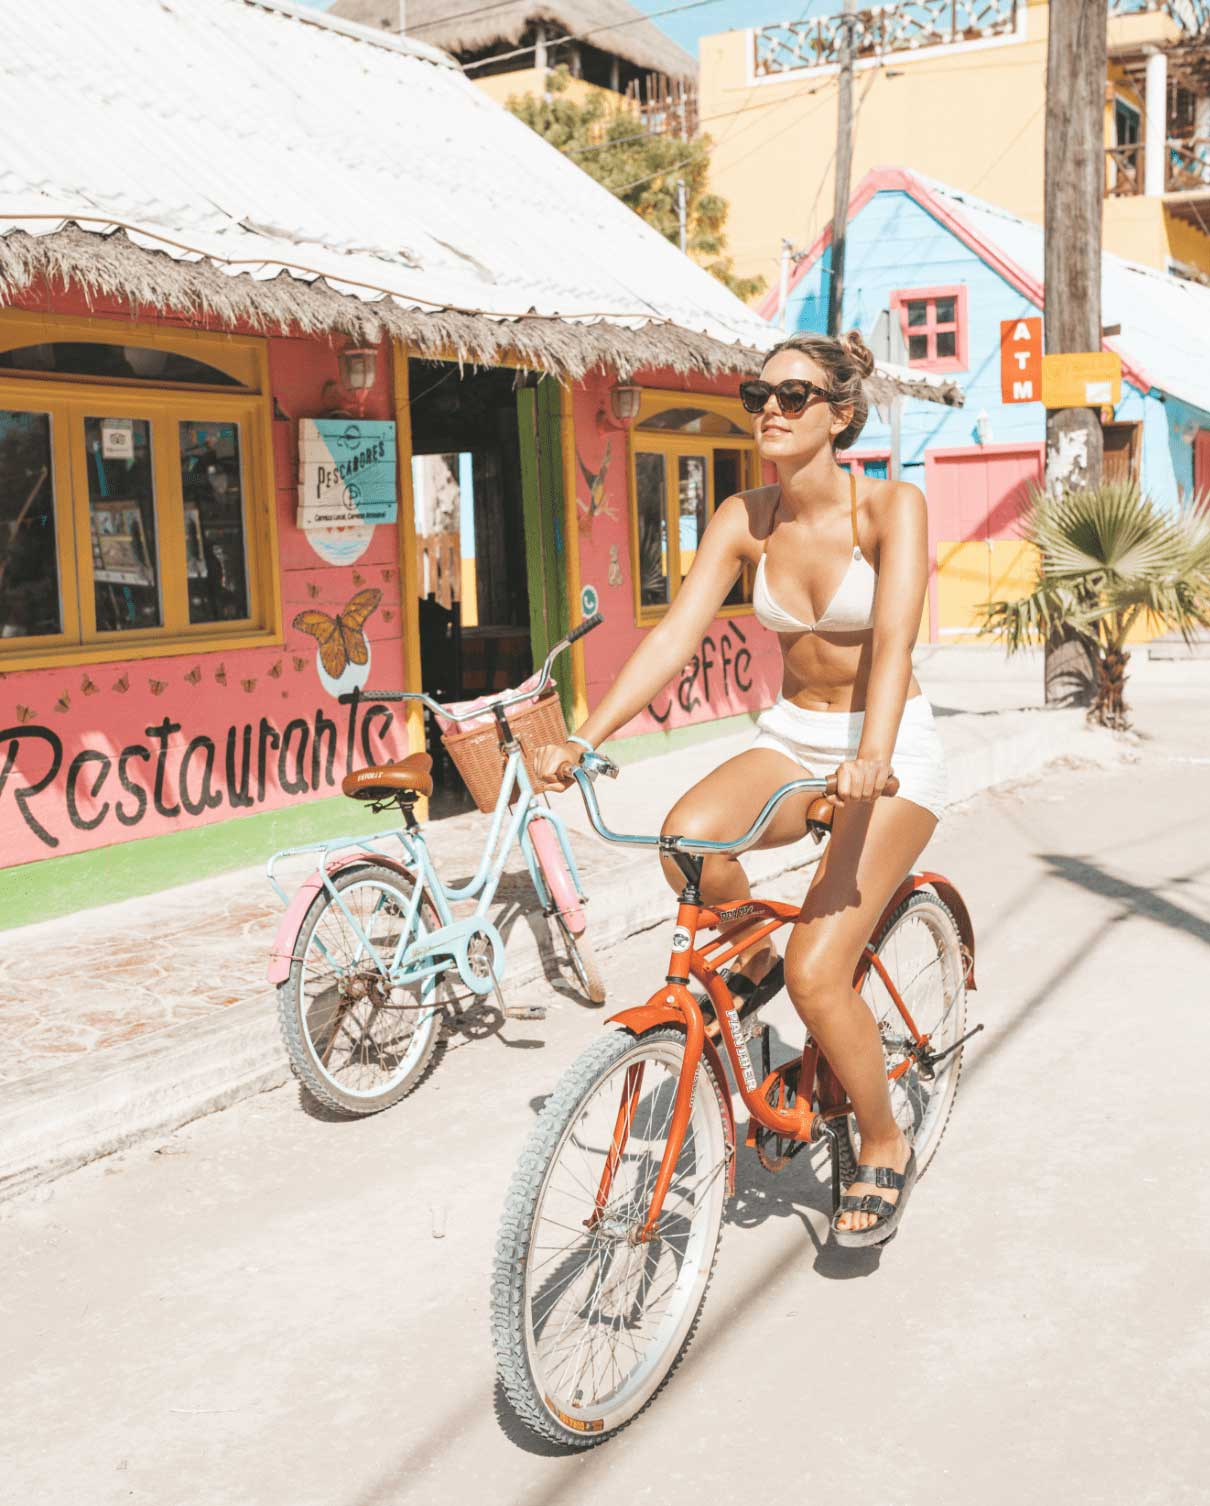 Heading to Oaxaca for three days and looking for the best things to do in Oaxaca. Well, this guide covers everything including what to do in Oaxaca, where to stay, and what to eat.